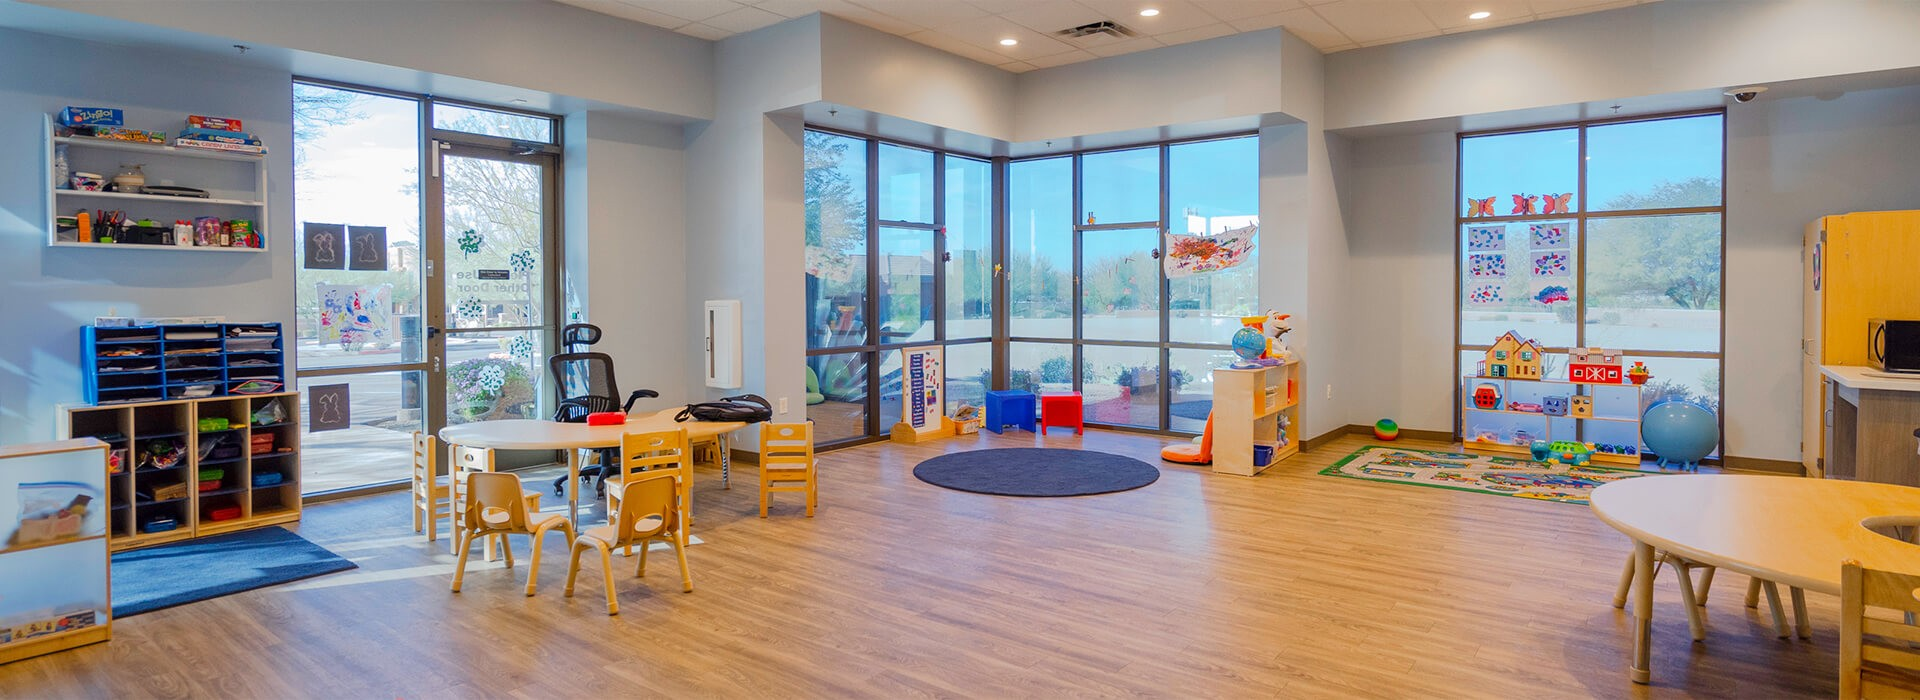 overview of a children's playroom filled with windows, tables, chairs, and toys